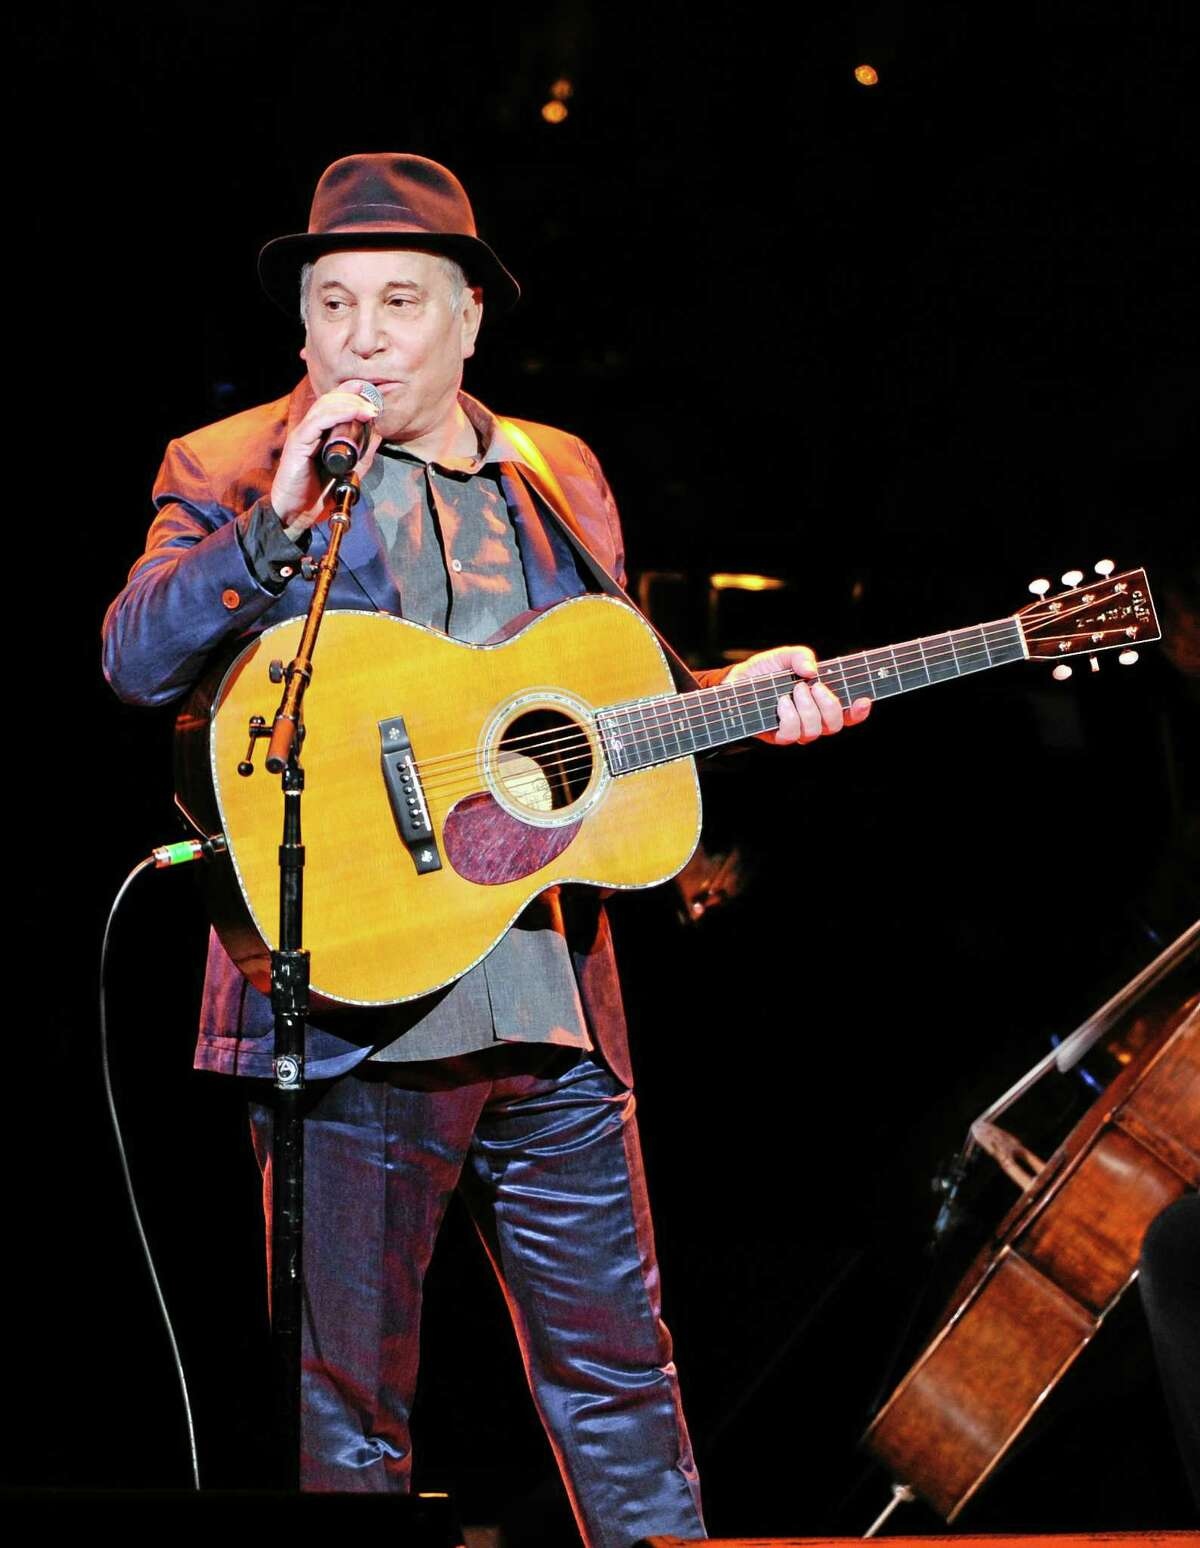 FILE - In this Thursday, April 17, 2014, file photo, musician Paul Simon performs at the 25th Anniversary Rainforest Fund benefit concert at Carnegie Hall in New York. Simon performed more than a dozen songs Wednesday night, May 7, 2014, at the Beacon Theatre in New York, where he was honored at the 2014 NYU Steinhardt Vision Award Gala. It was Simon's first public appearance since he and wife Edie Brickell were arrested on disorderly conduct charges. (Photo by Evan Agostini/Invision/AP, File)